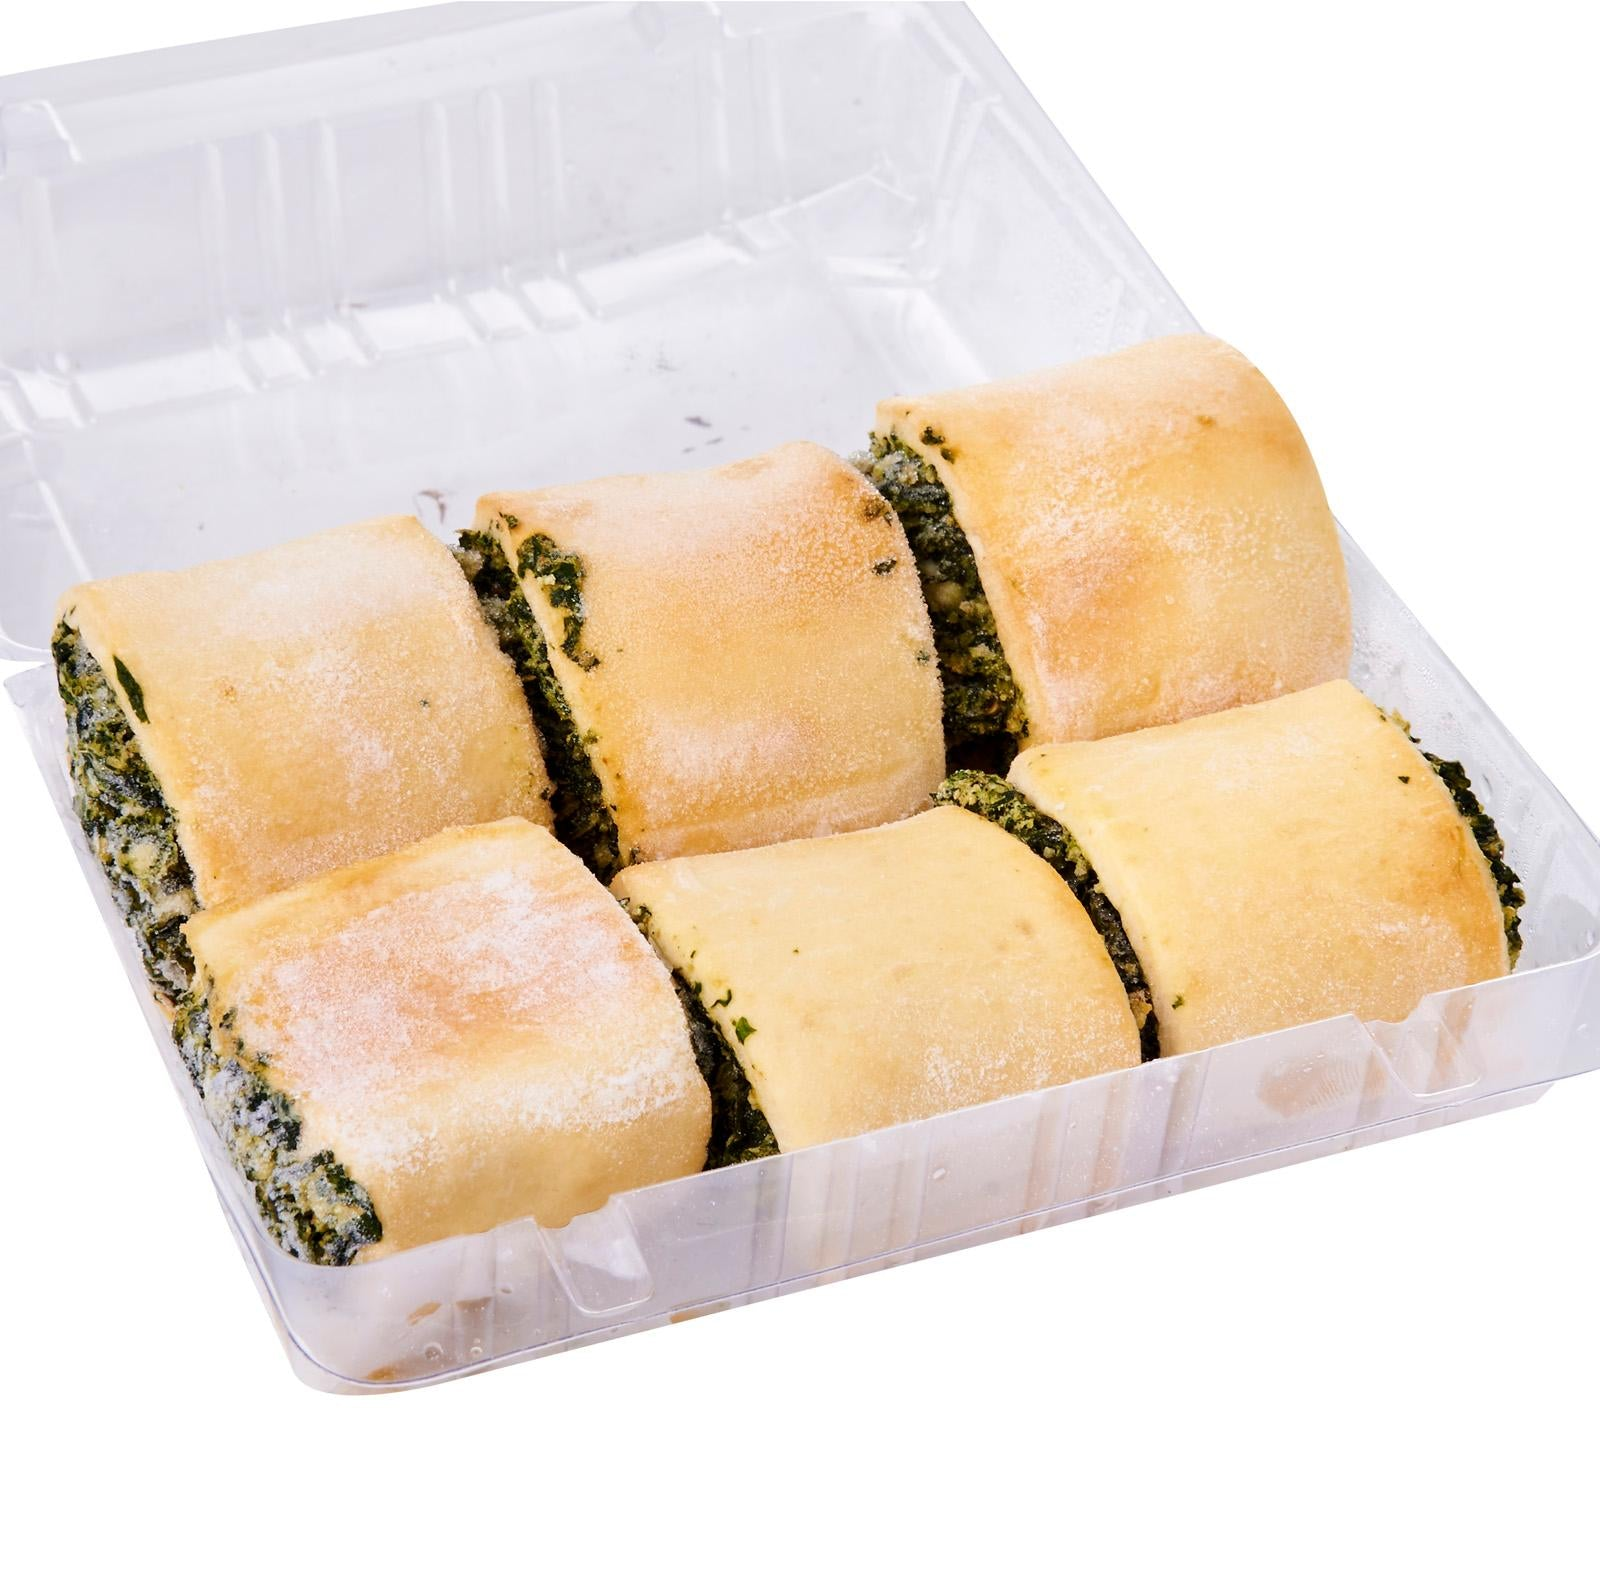 Party Spinach and Ricotta Roll (6 x 55g)